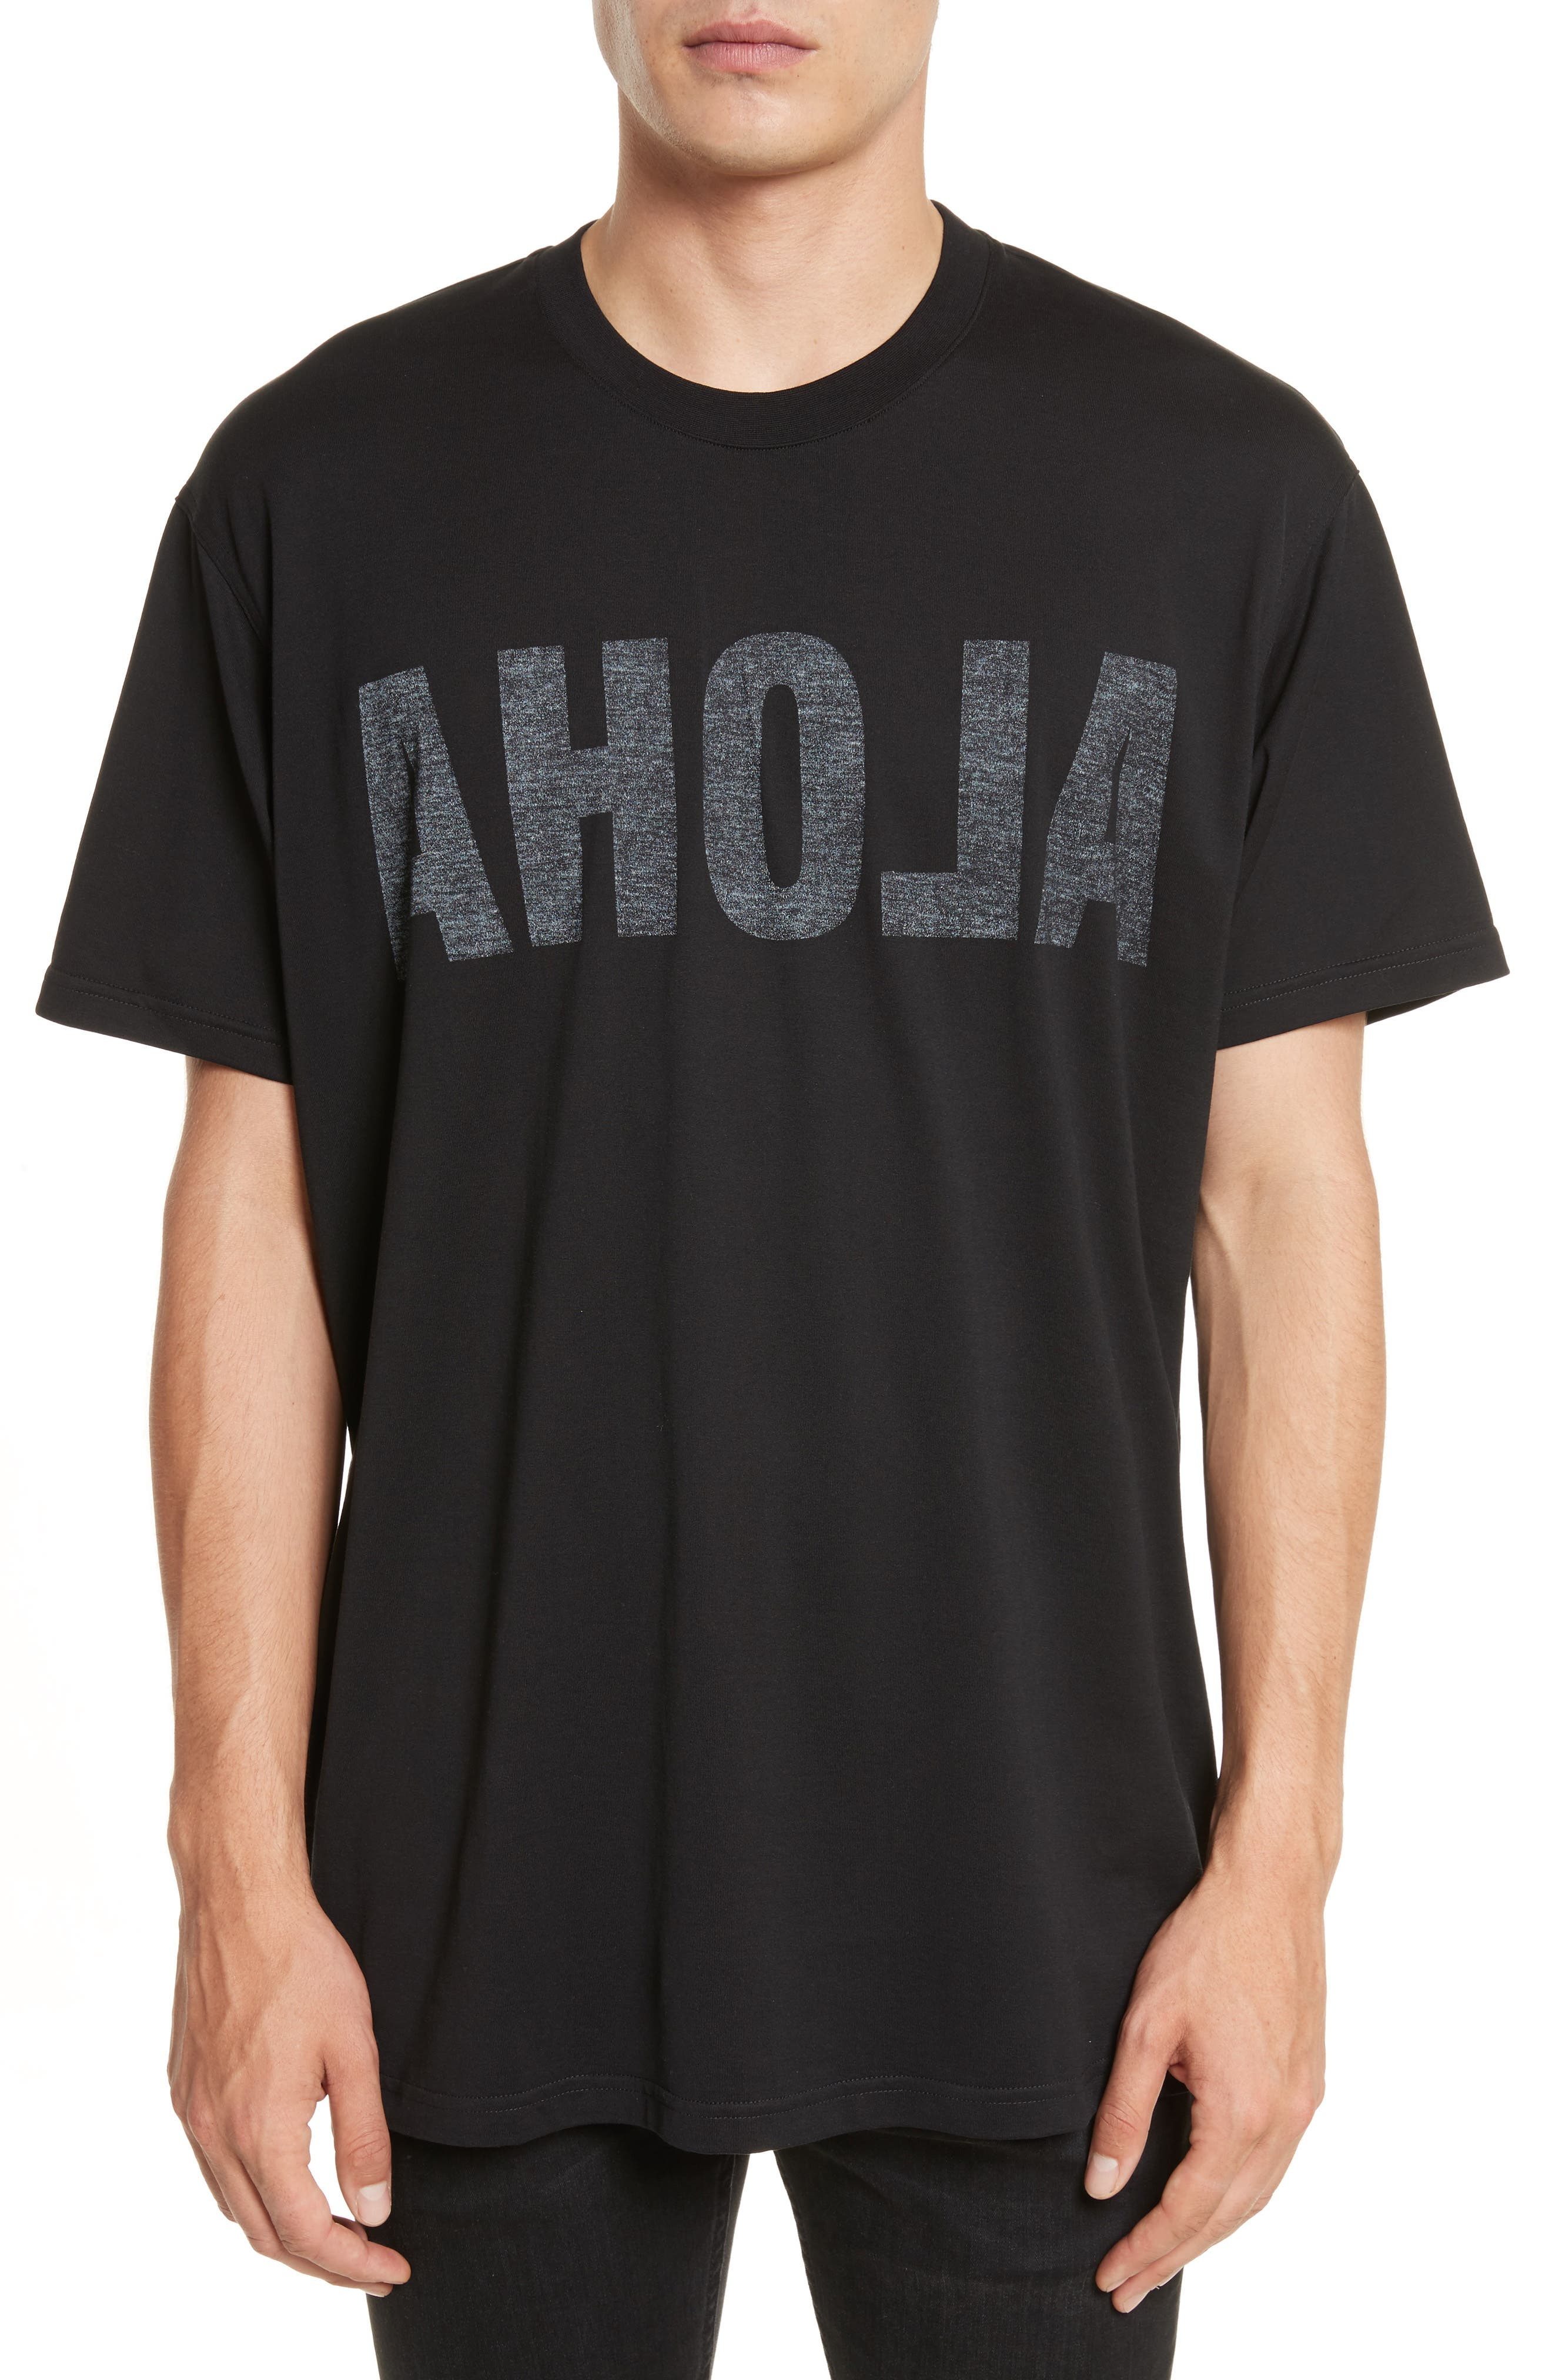 Givenchy Columbian Fit Aloha Graphic T-Shirt